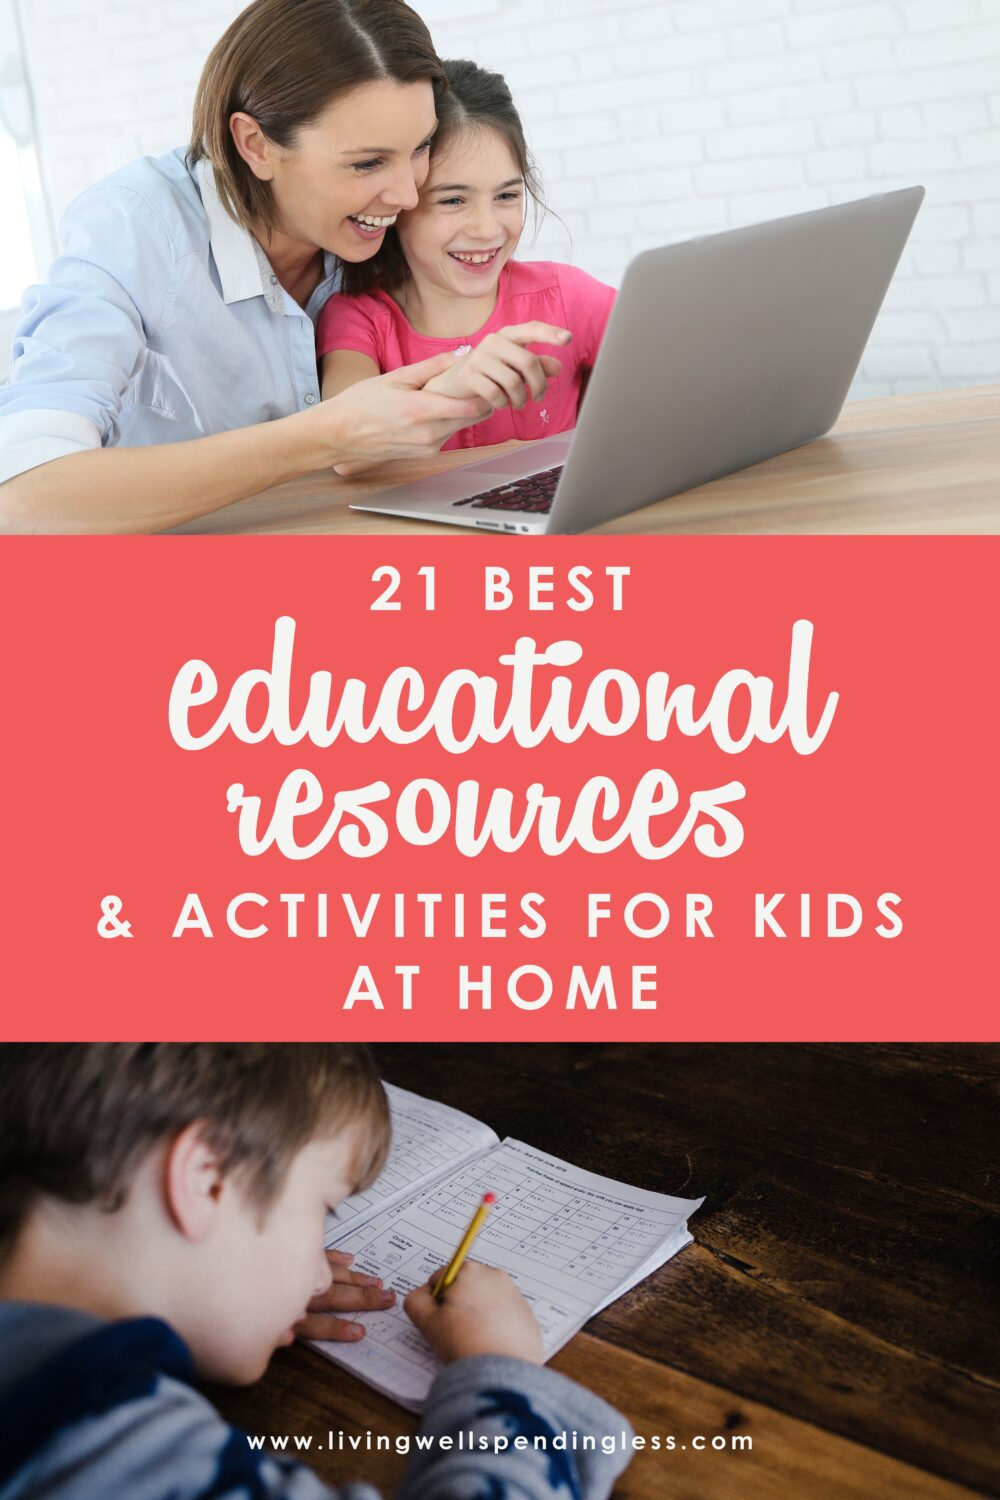 Finding yourself suddenly having to be at home for a few days (or weeks) with your whole family can be quite stressful. What are you supposed to do all day? How are you going to keep everyone entertained, fed, learning, and from going stir crazy (yourself included)? We've got you covered! We've gathered 21 of the Best Educational Resources and Activities to keep kids active, learning and engaged at home. Don't miss it! #homeschool #elearning #kidseducation #covid19 #kidsathomecovid19 #pbskids #kidsactivites